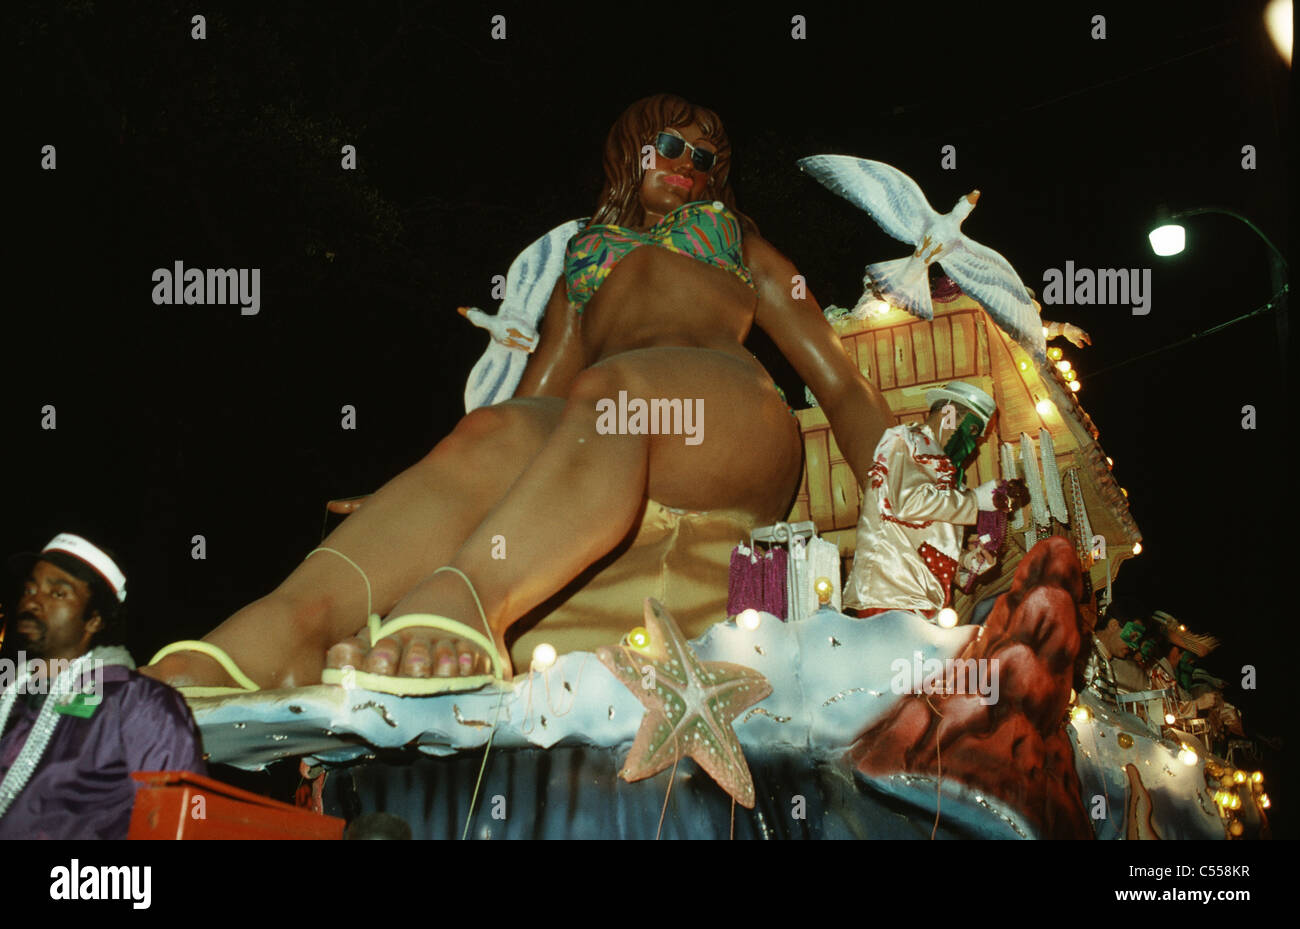 USA, Louisiana, New Orleans, Karneval Karneval Stockbild